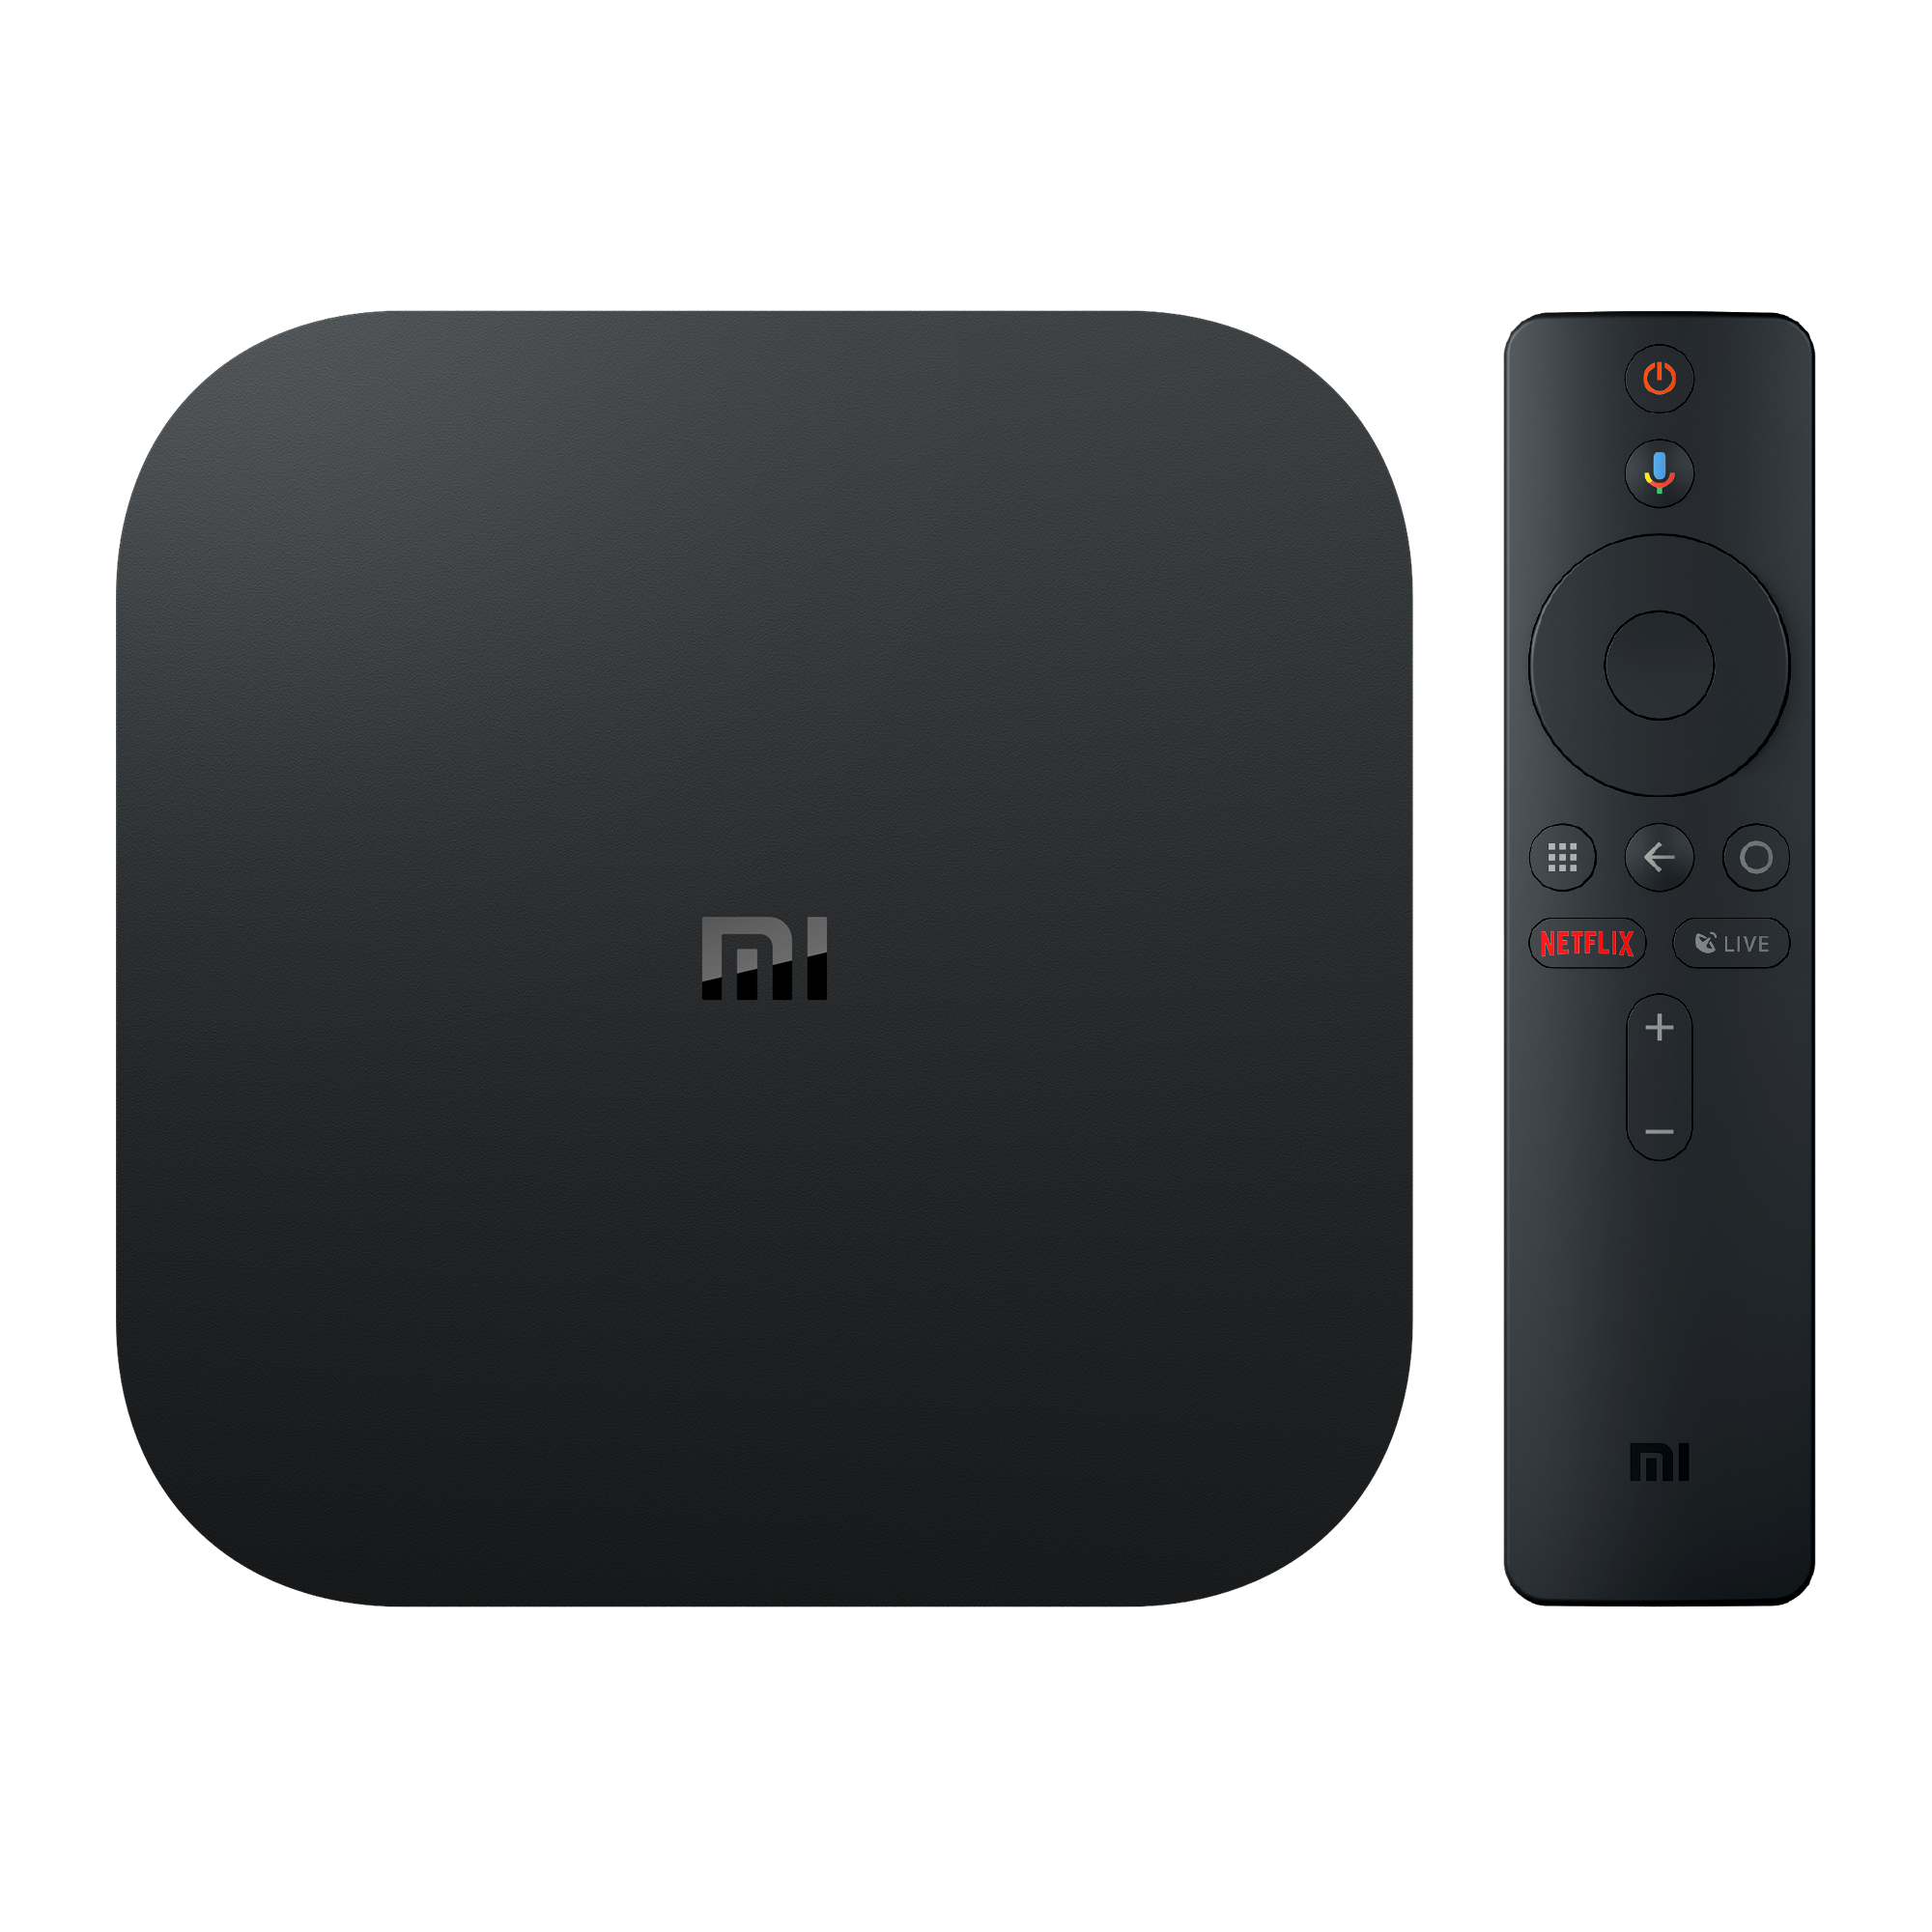 Xiaomi Introduces Its 4k Hdr Mi Box S The Verge Mp3 Player Circuit Schematic Diagram Basic Usb